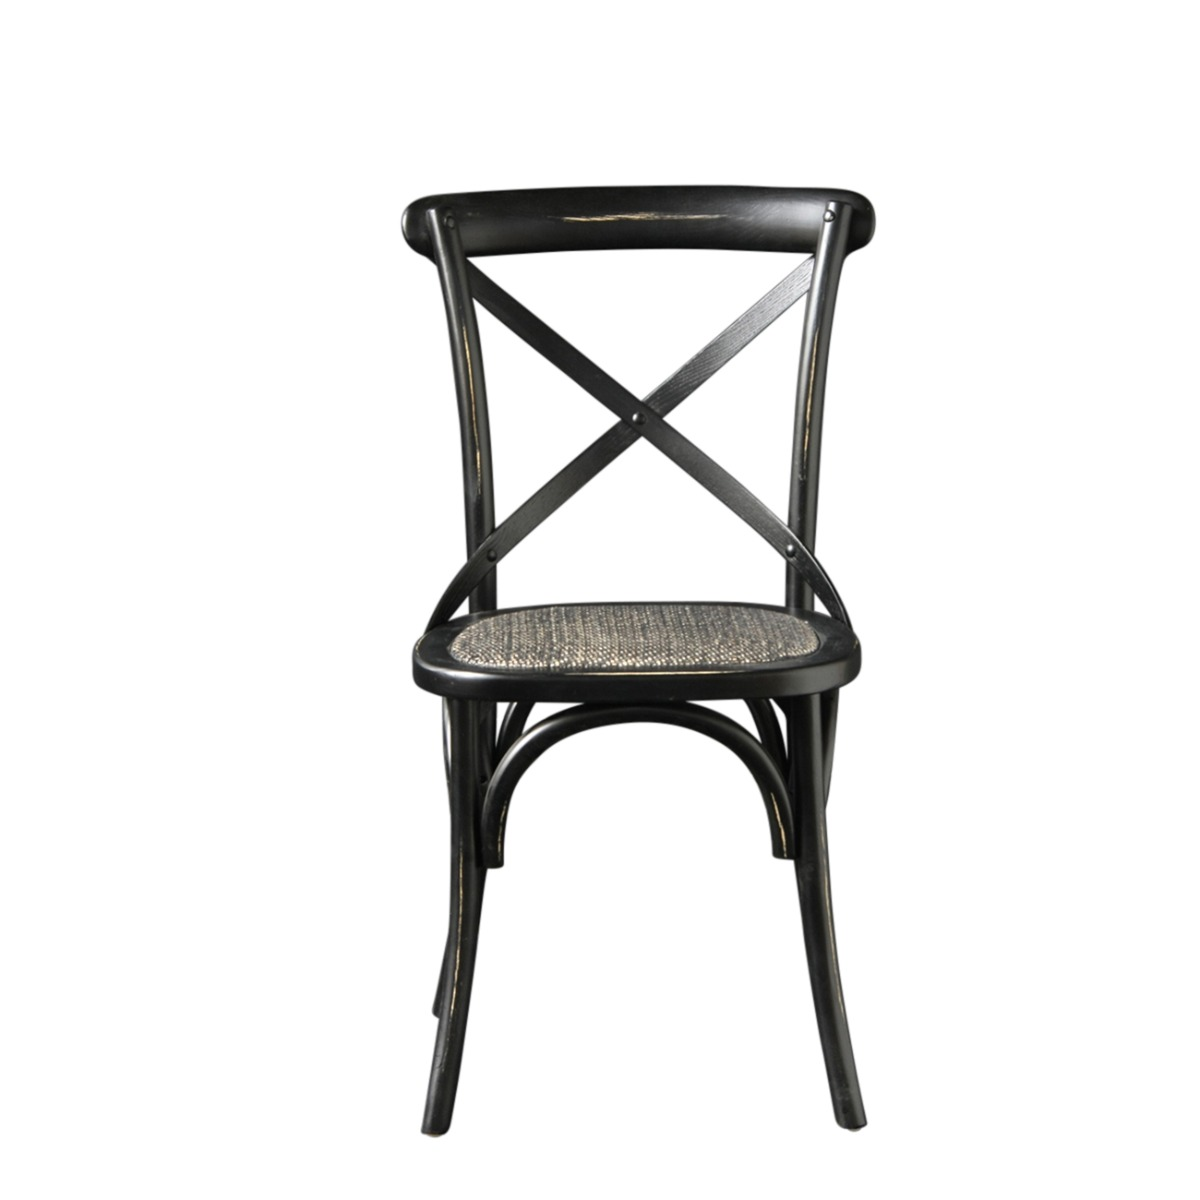 French Cross Back Bentwood Dining Chair, Café / Restaurant / Kitchen / Bistro, Metal Cross Back, Black